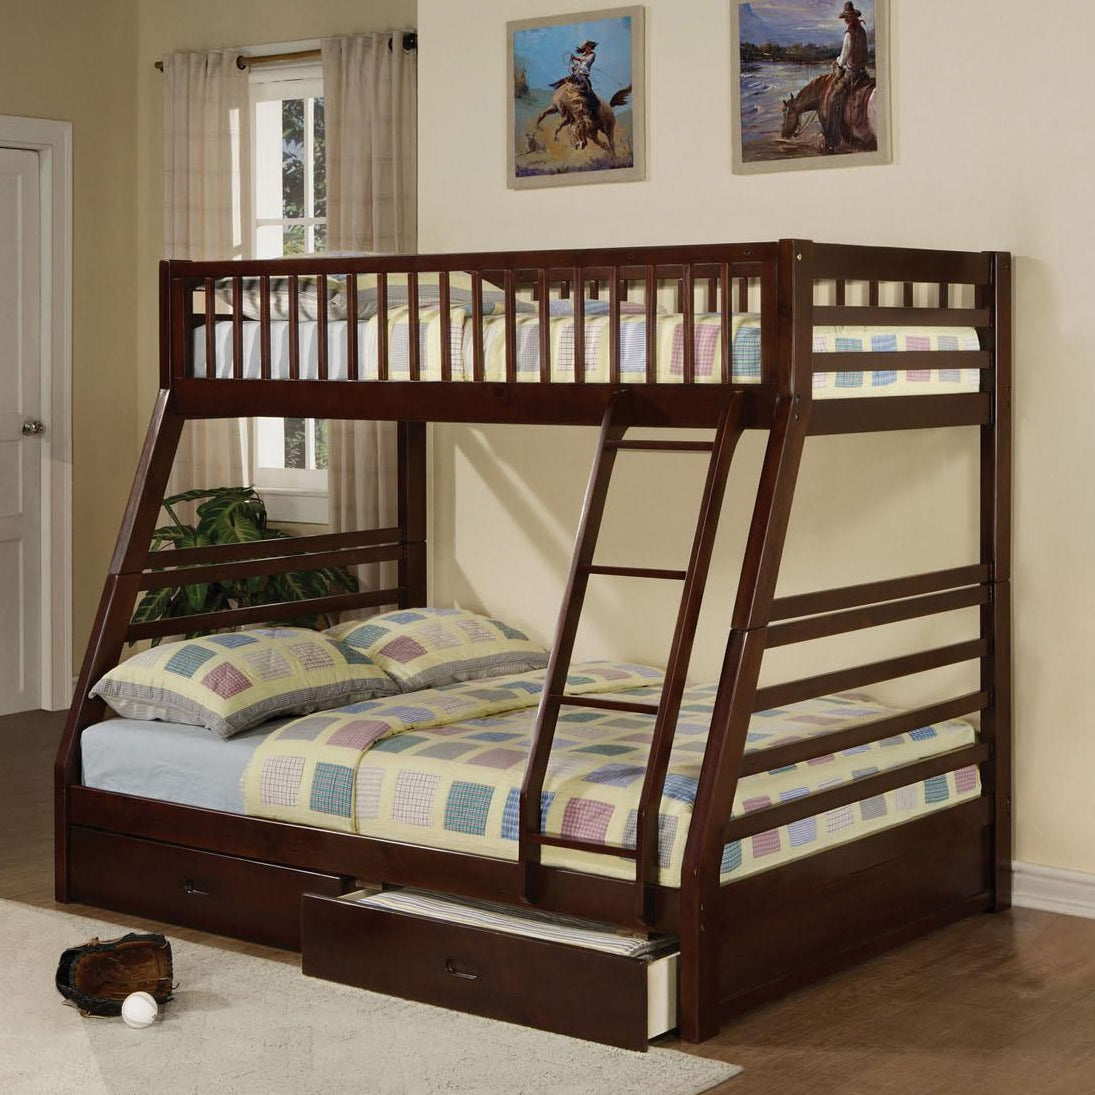 Chance Twin/Full Bunkbed with Storage Drawers. - Lifestyle Furniture